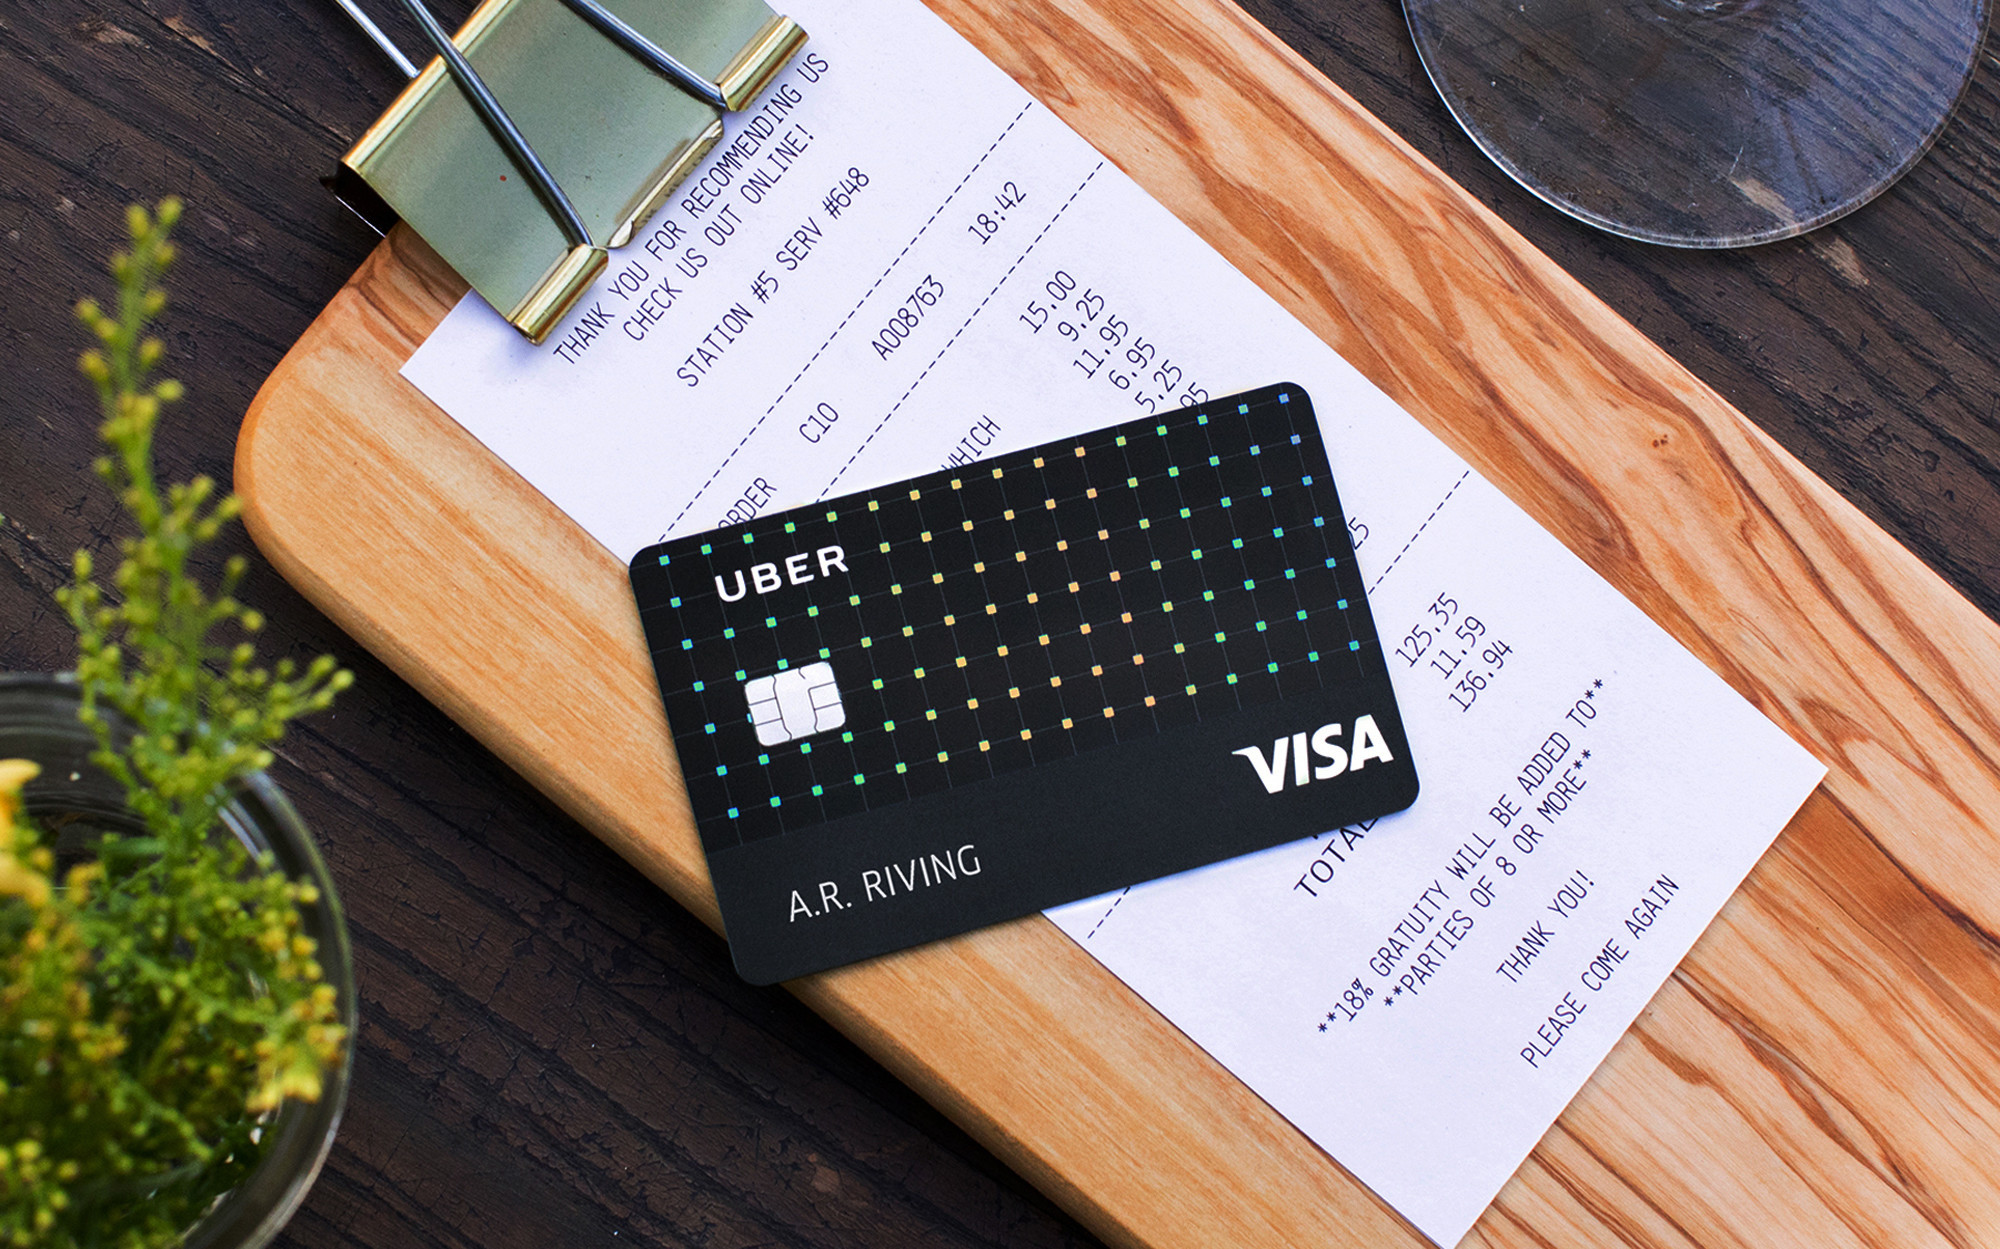 Uber rides into credit card market with no-fee credit card - Chicago ...